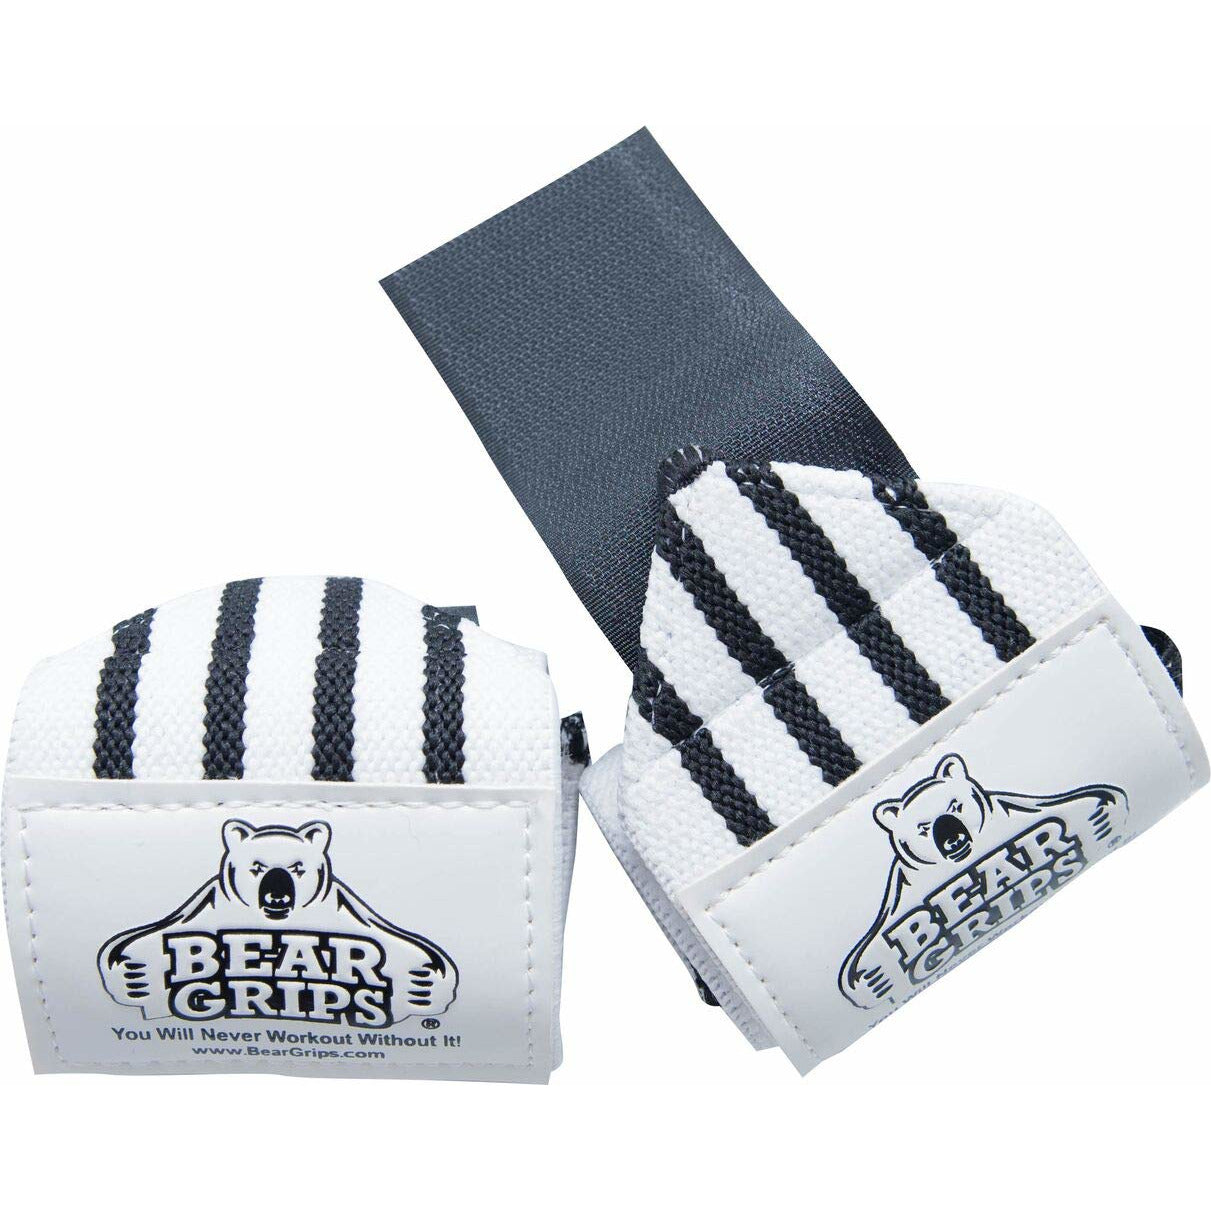 "Bear Grips: Gray Series, White Series Wrist-Wraps, Extra-Strength Wrist Support, Wrist Brace for Workouts, wods (White with Black Stripes, 18"", Sold in Pairs, Two Wrist Straps per Pack)"